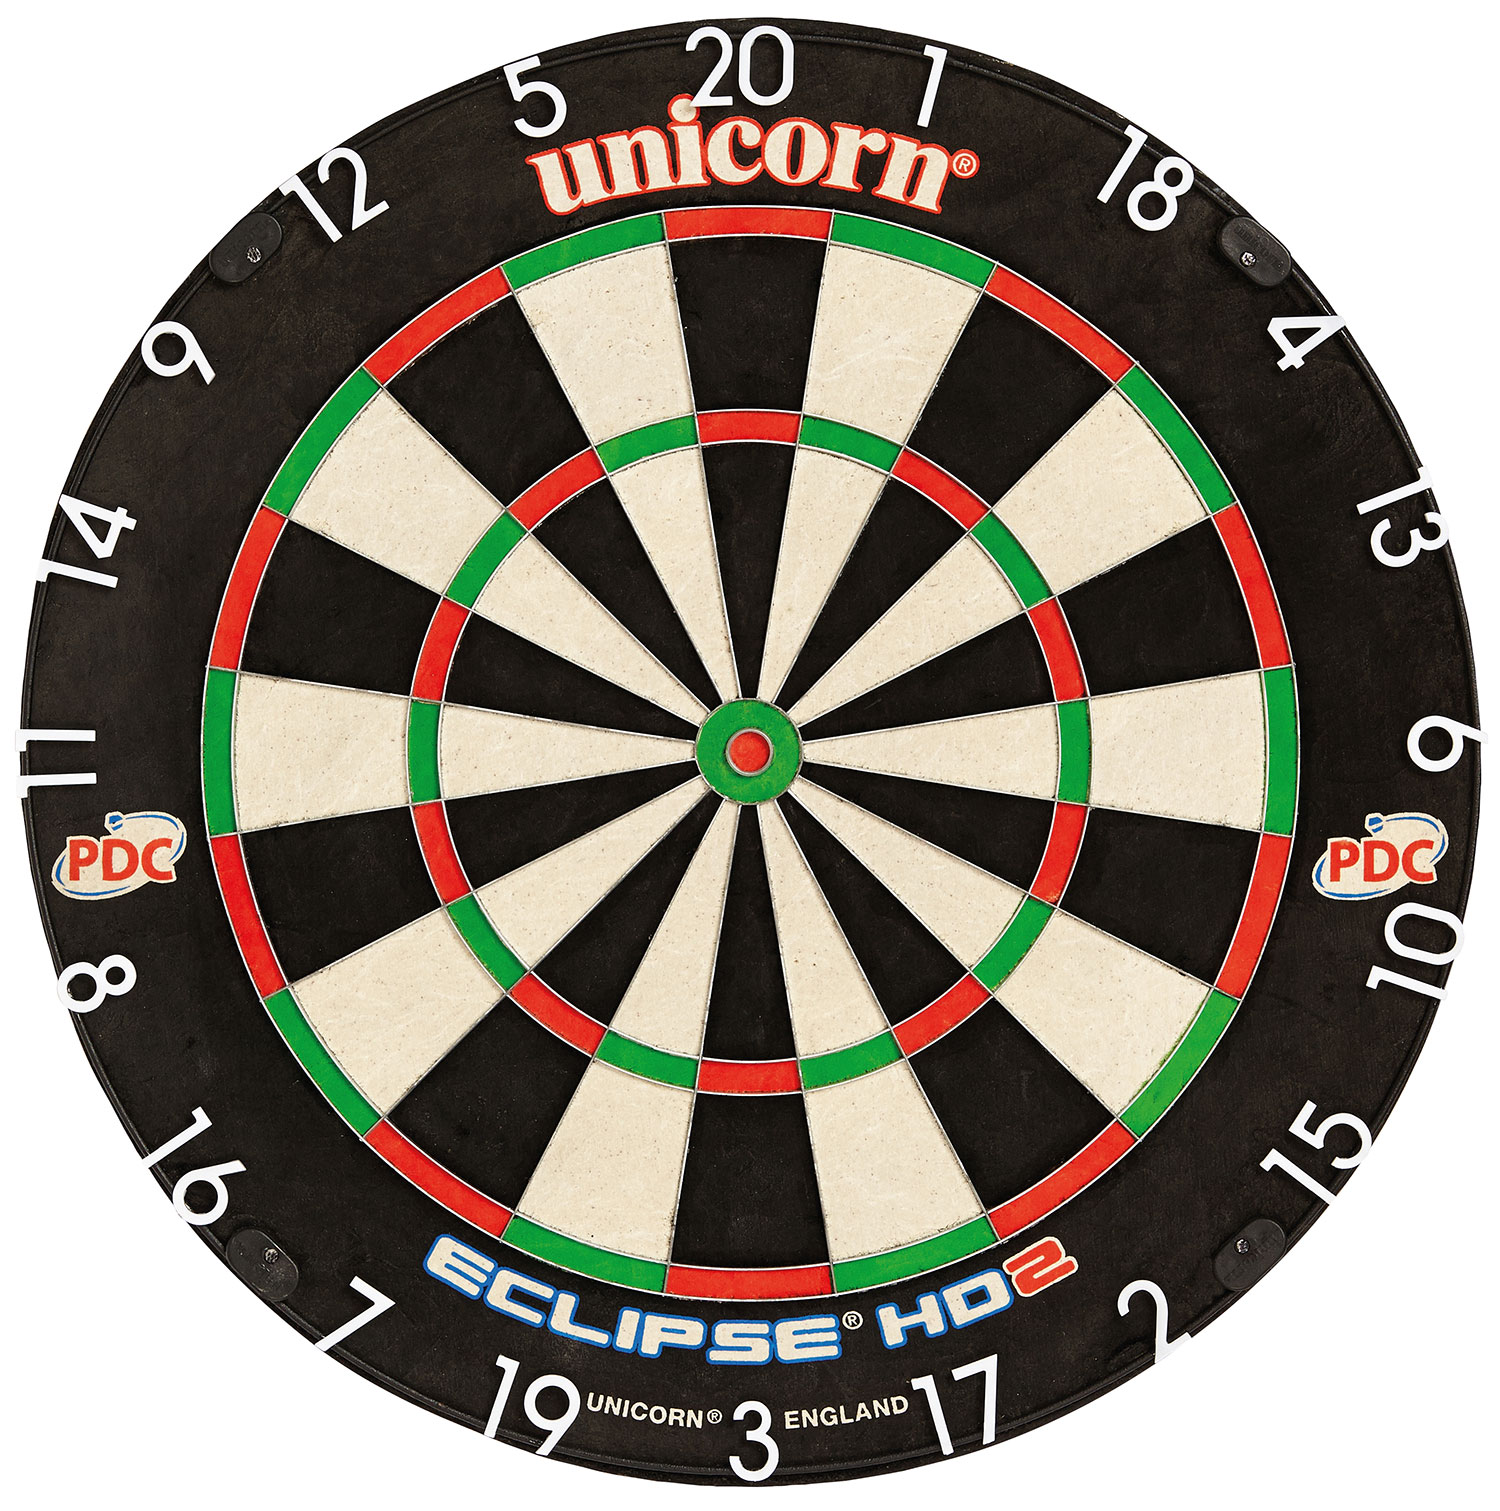 UNICORN ECLIPSE HD2 PRO DARTBOARD - WITH UNILOCK